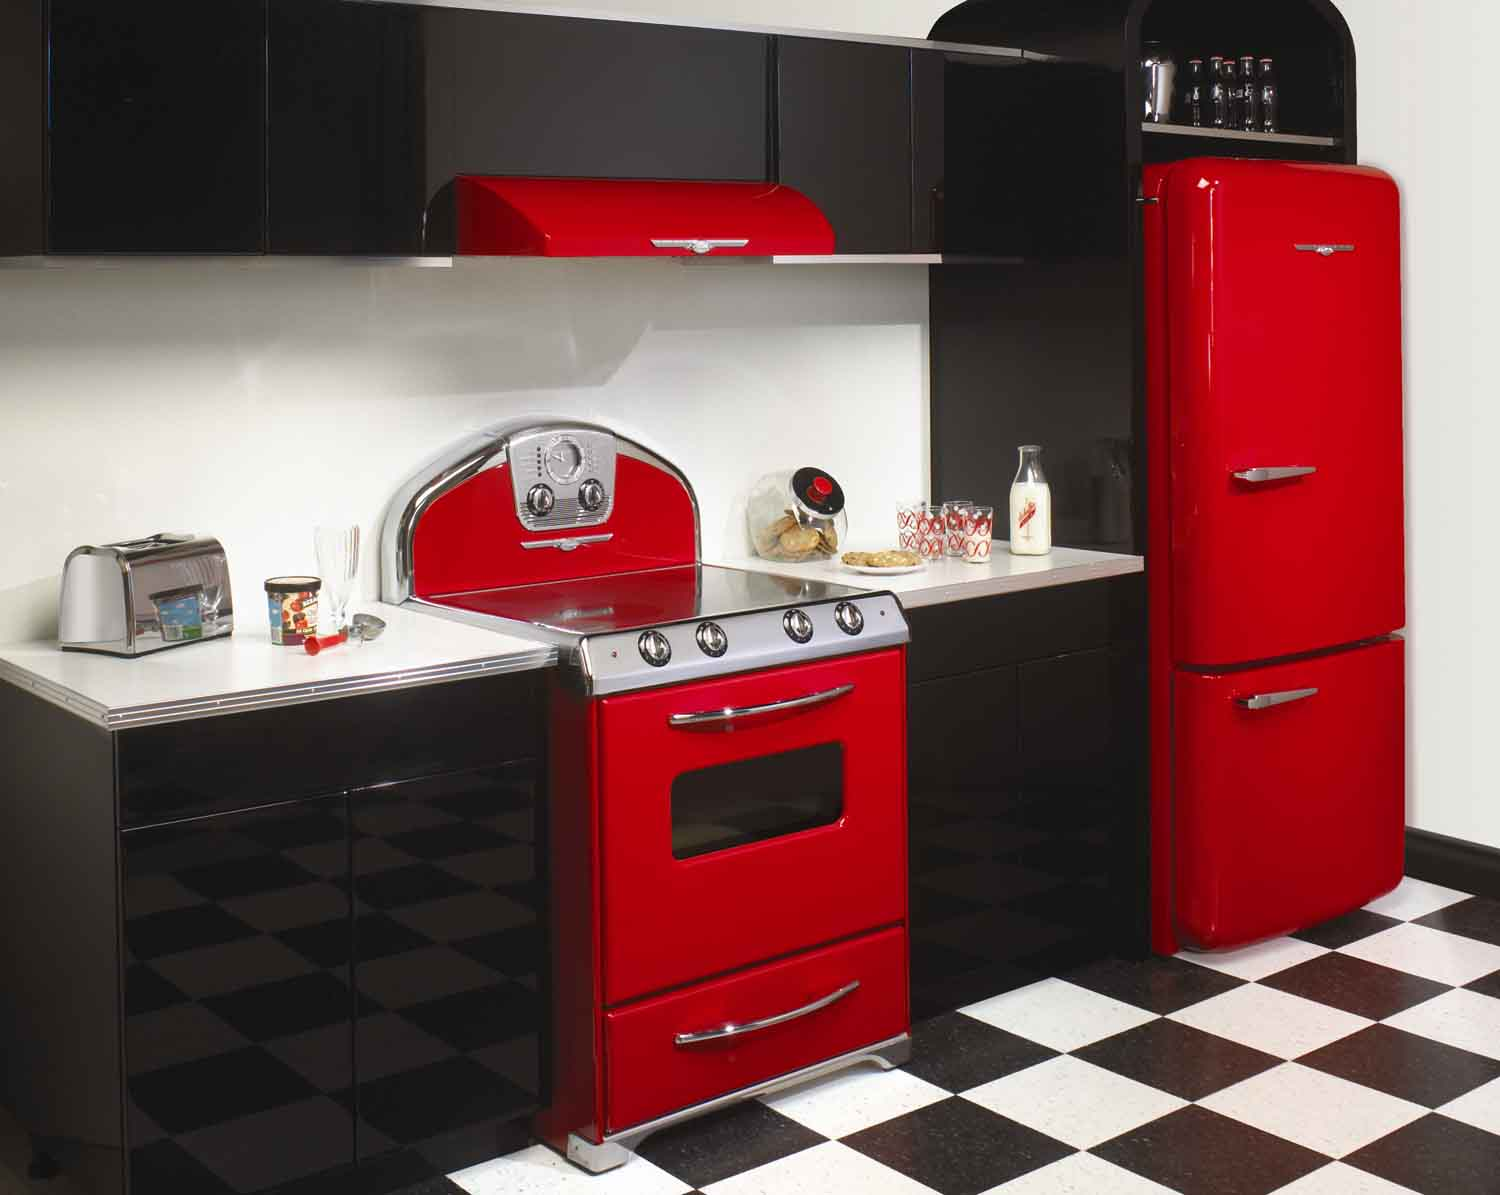 The Nineteen 1950s Decorating topic bedrooms - Maries Manor: 50s bed room ideas - 50ss From The 1950s Latest Home Interior Design - Home Interior Design Ideas - Fifties Kitchens